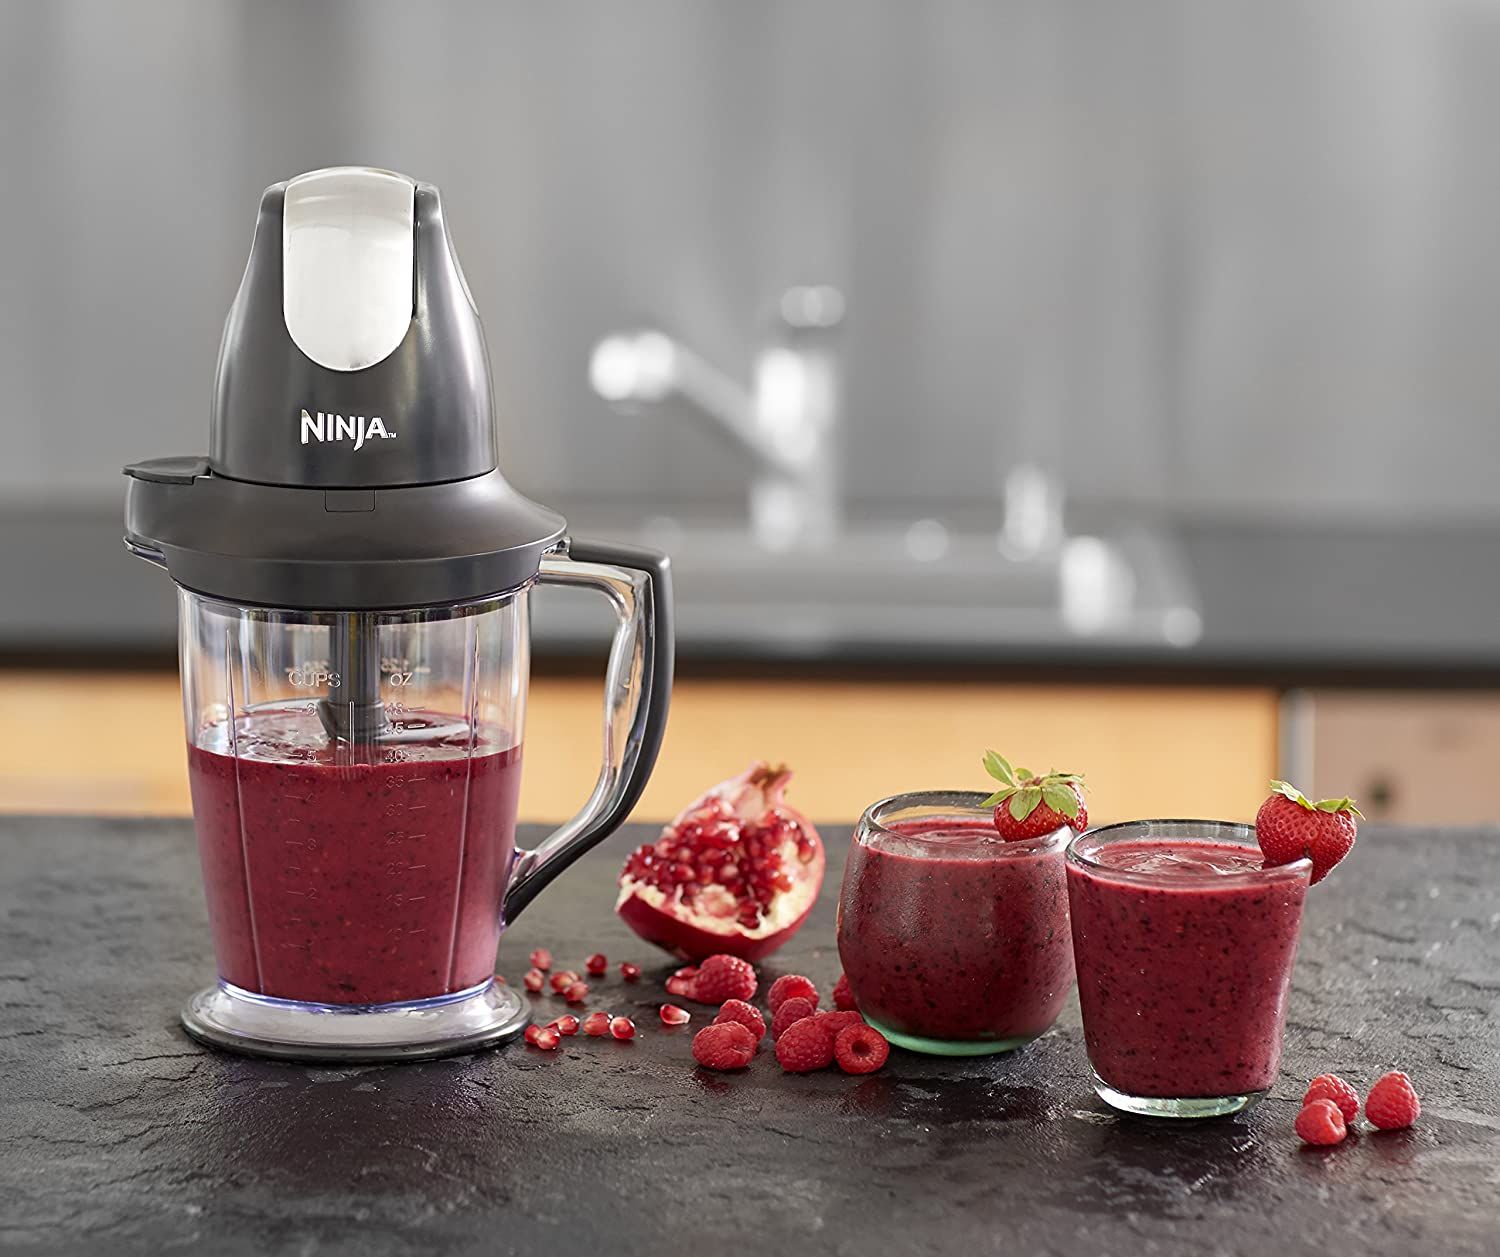 Best Food Processor 2020: The 5 Most Top-Rated And Best Selling Products 3